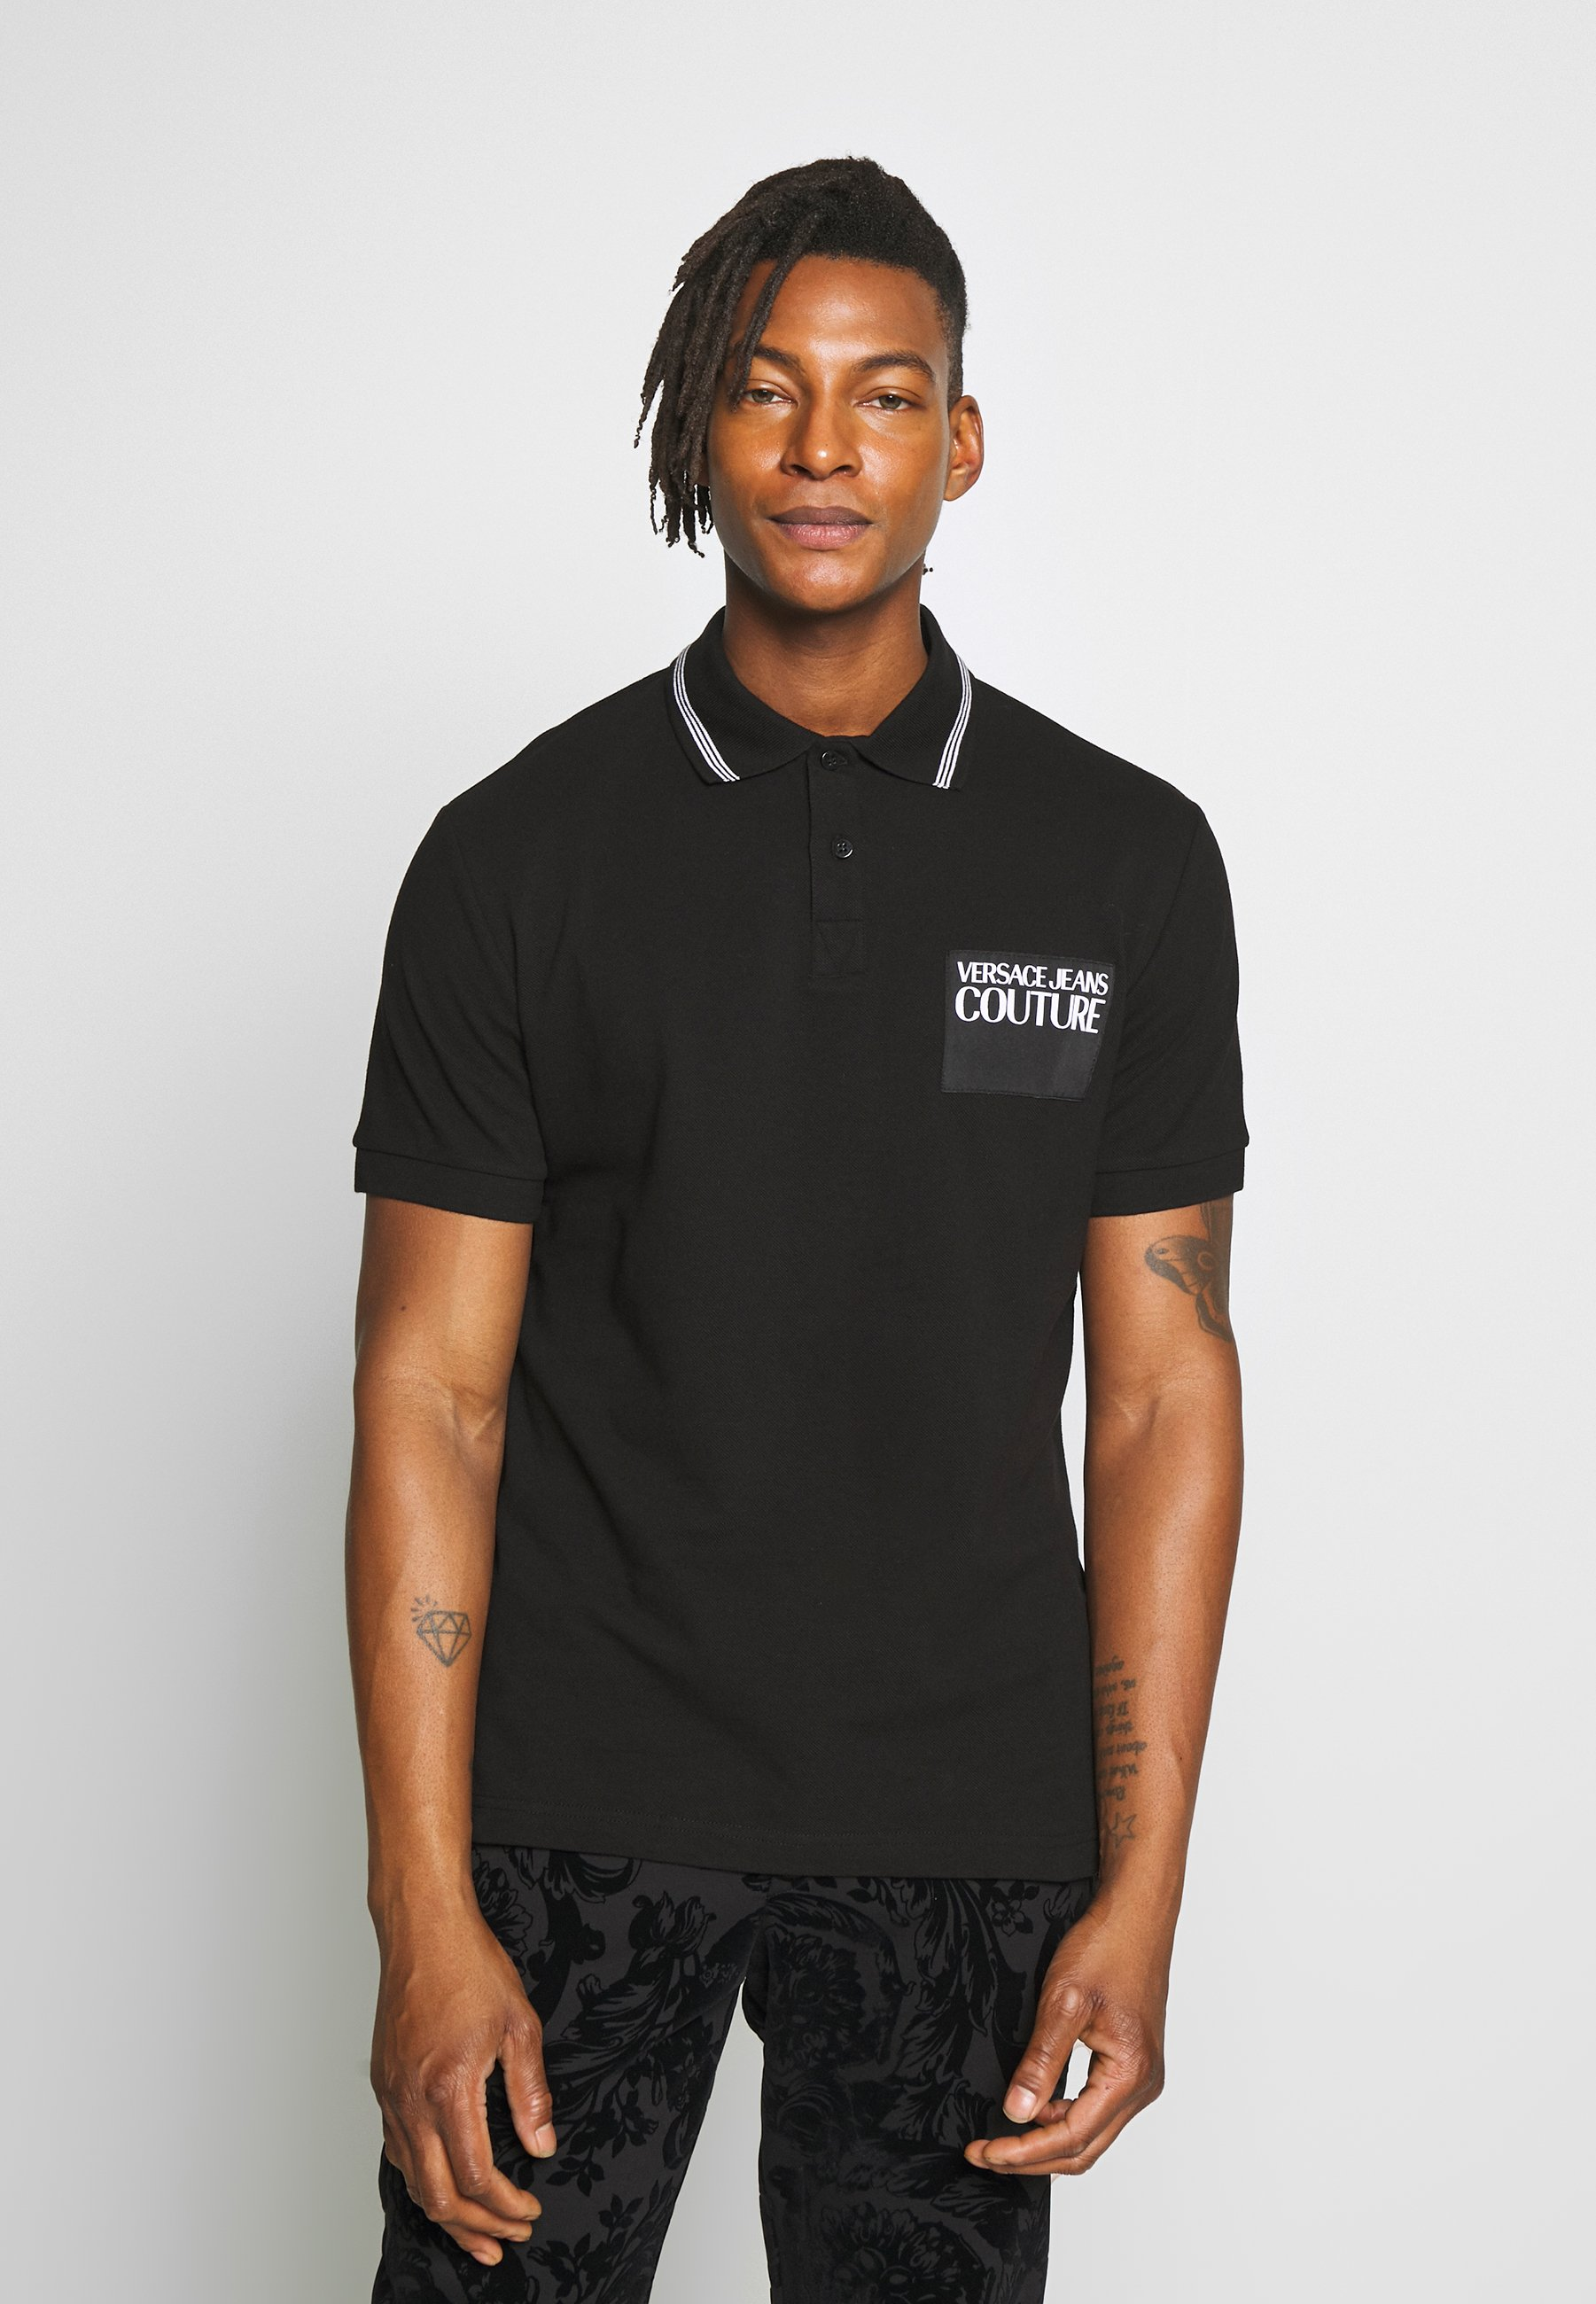 The Cheapest Popular And Cheap Men's Clothing Versace Jeans Couture PATCH Polo shirt black jC9vztjYu fELNiqSYe